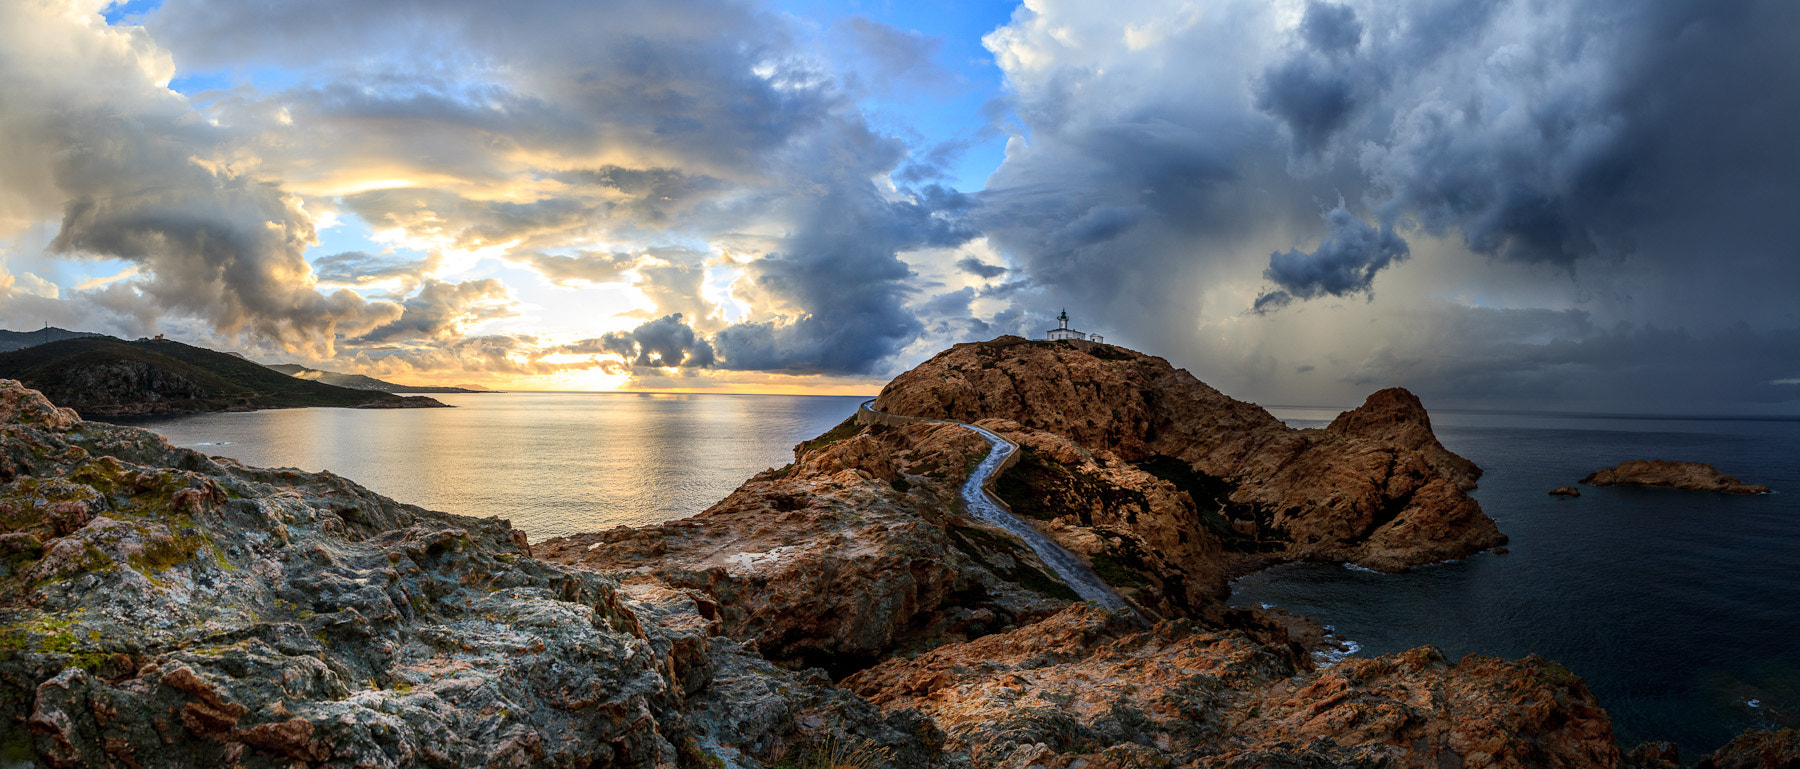 Photograph Ile Rousse Panorama by Ramelli Serge on 500px